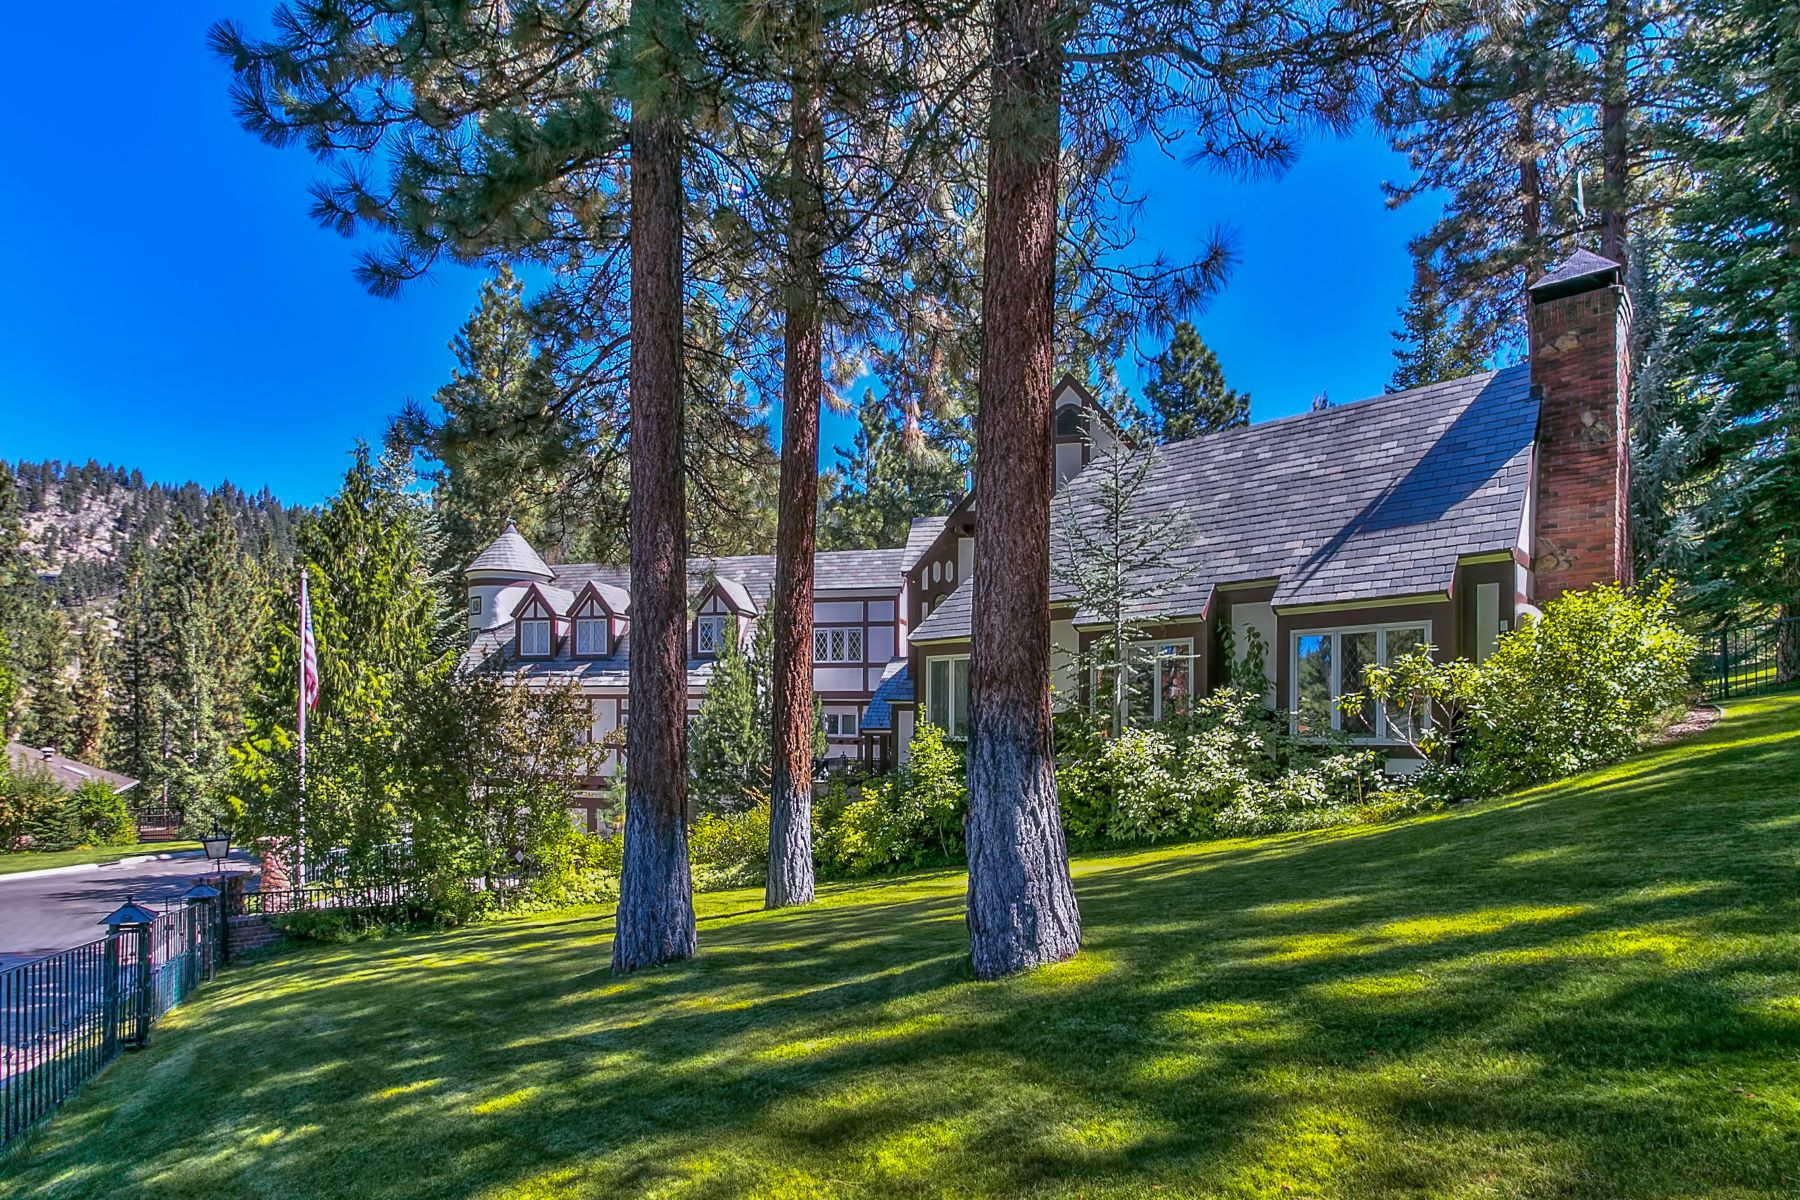 Single Family Homes for Active at Classic Tahoe Tudor 1273 Hidden Woods Drive Glenbrook, Nevada 89413 United States